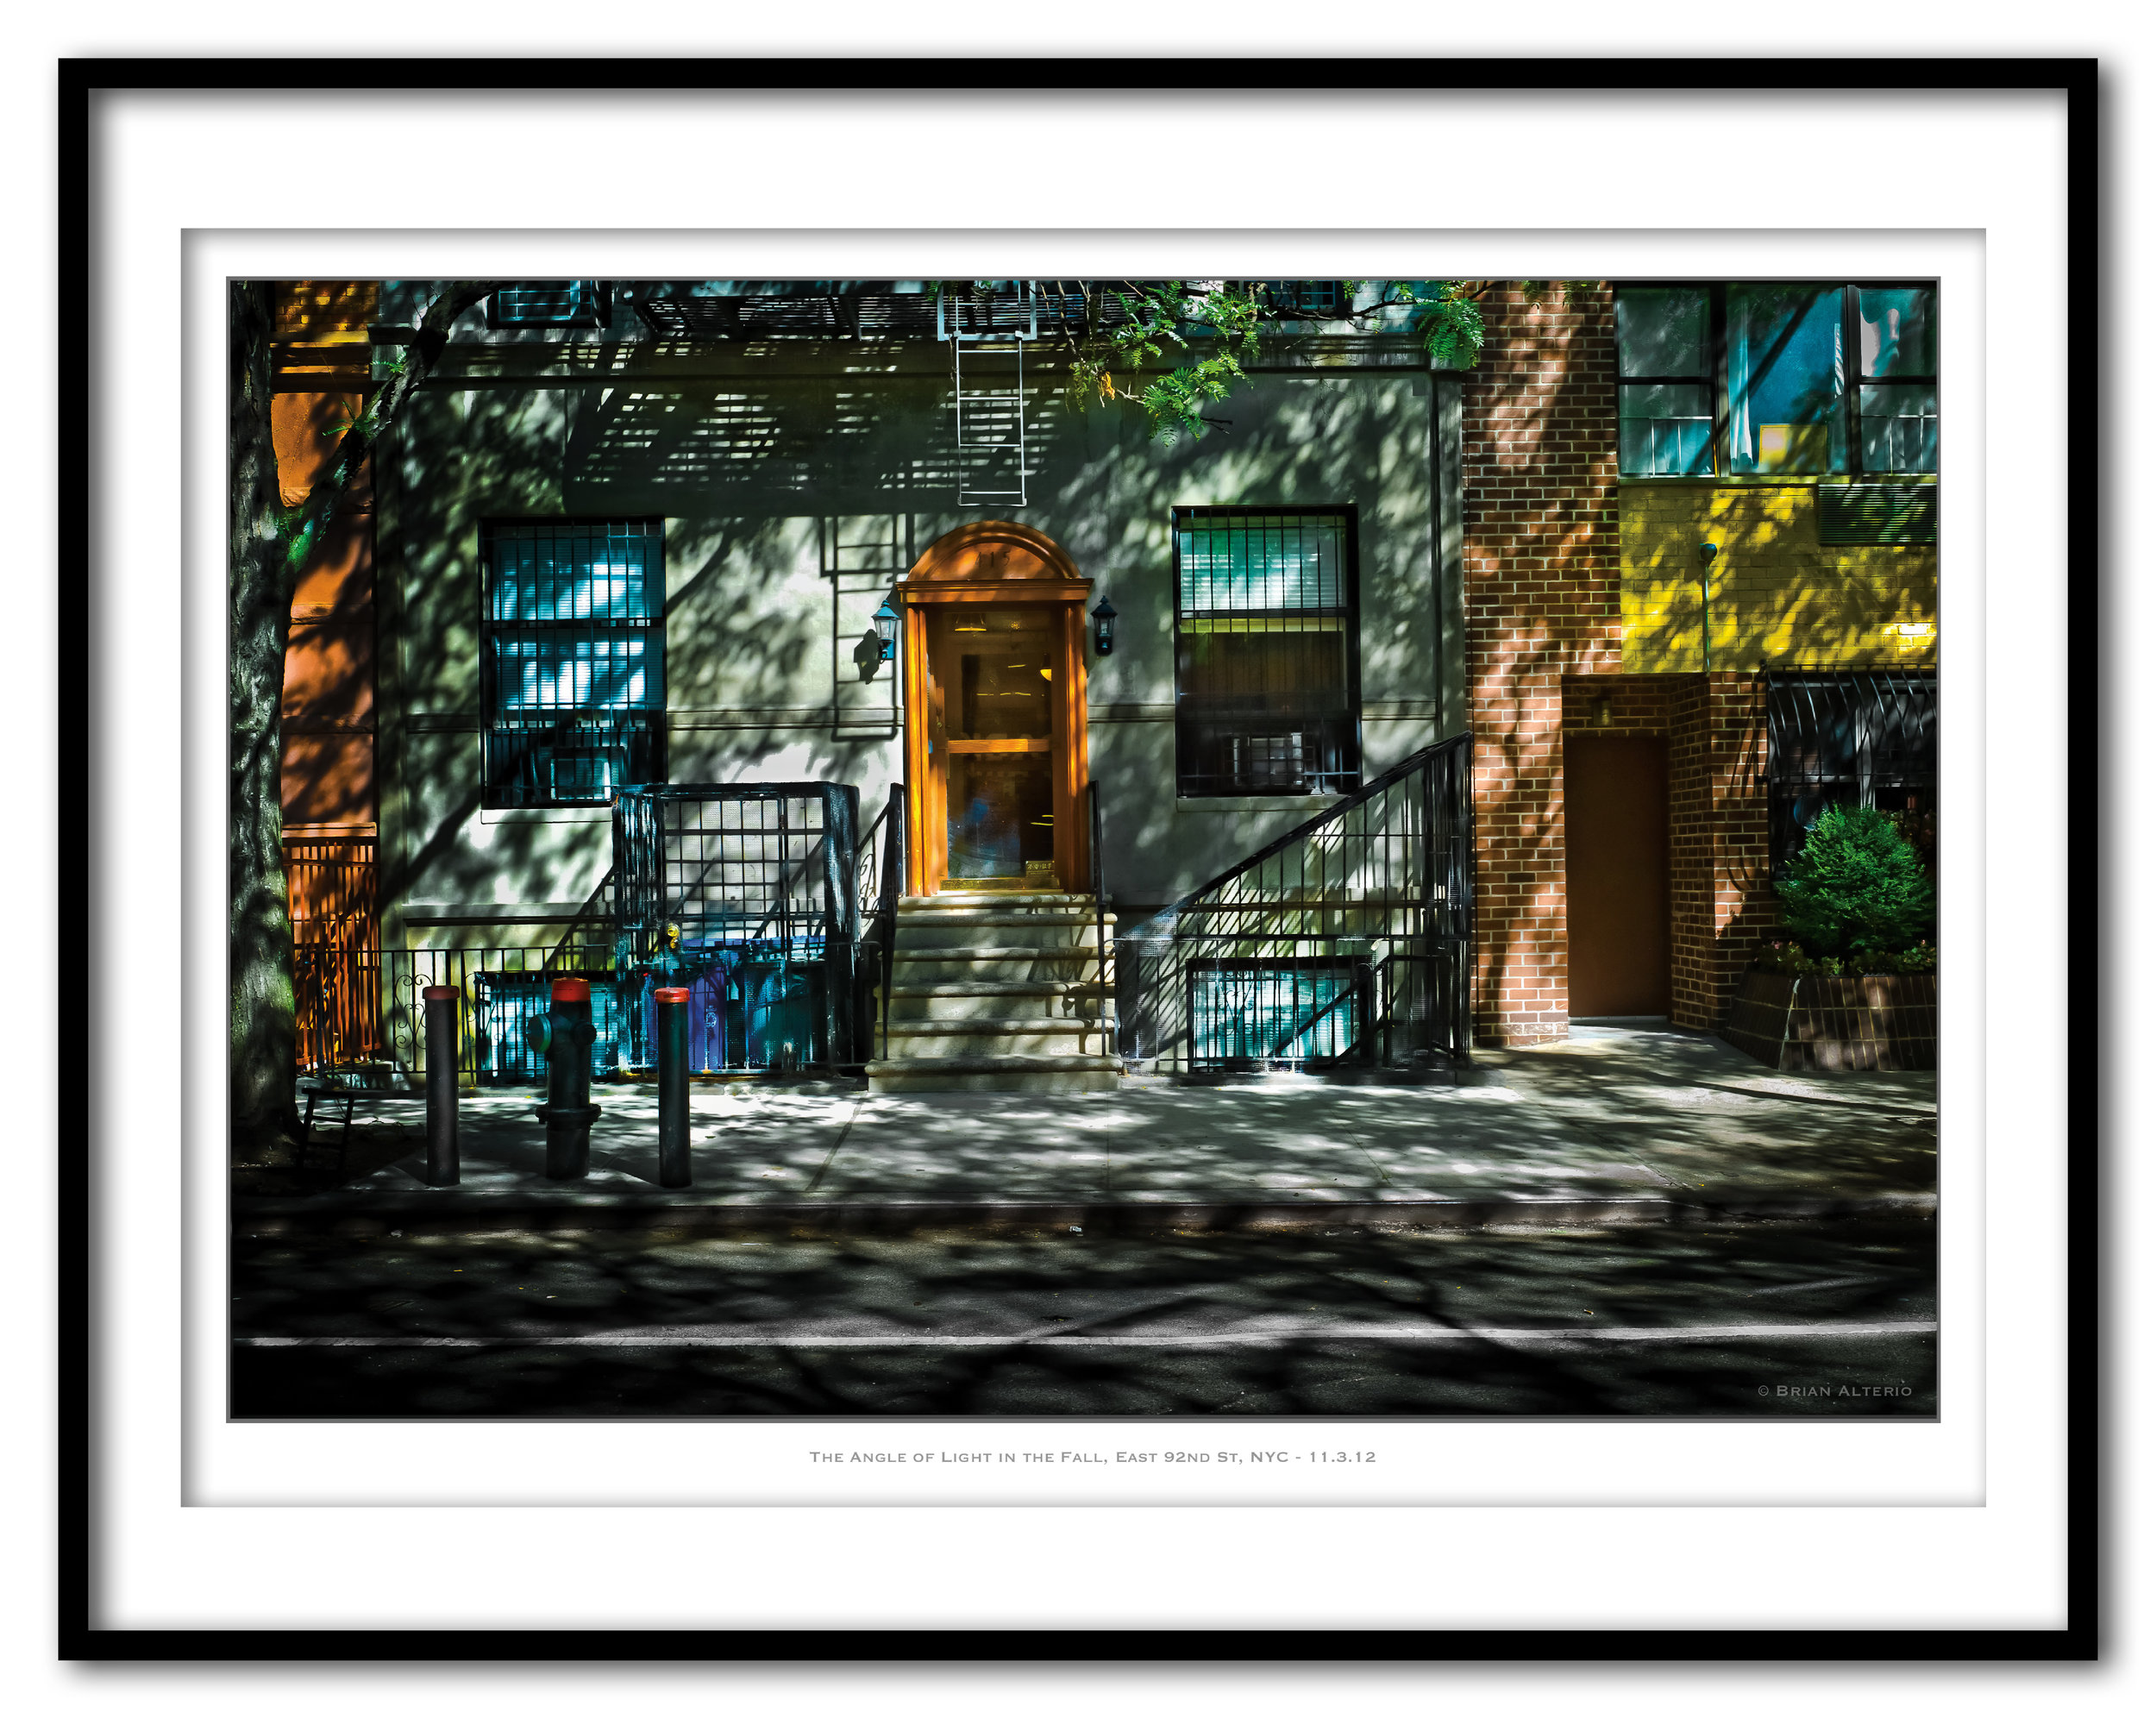 The Angle of Light in the Fall, East 92nd St, NYC - 11.3.12 - Framed.jpg